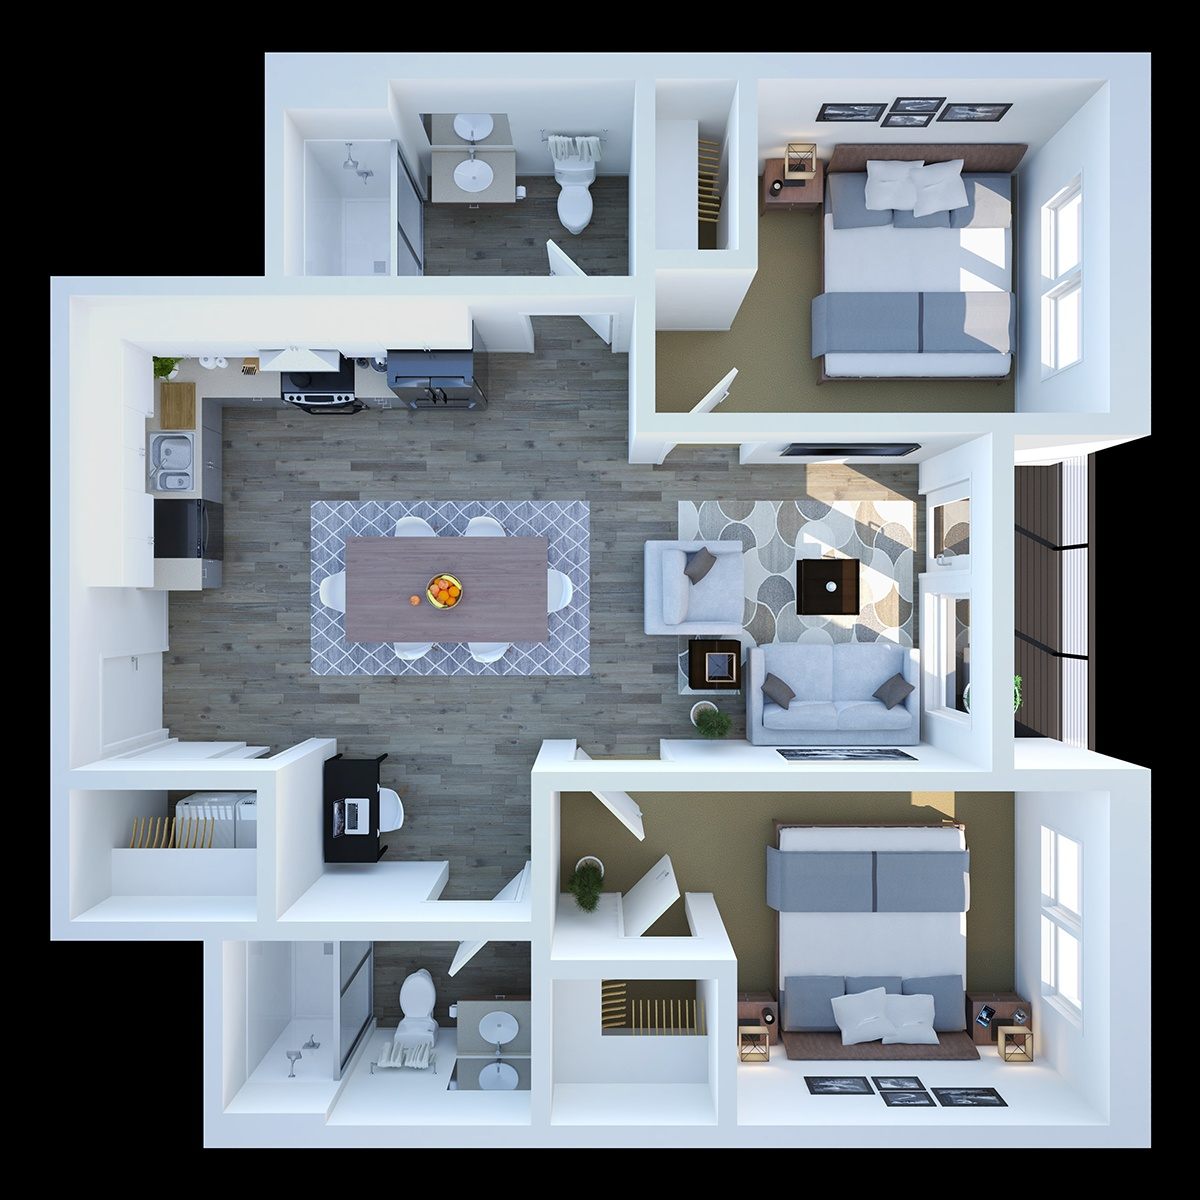 Two Bedroom - This smart design includes two bedrooms, two bathrooms, and 979 sq. ft. of living space.